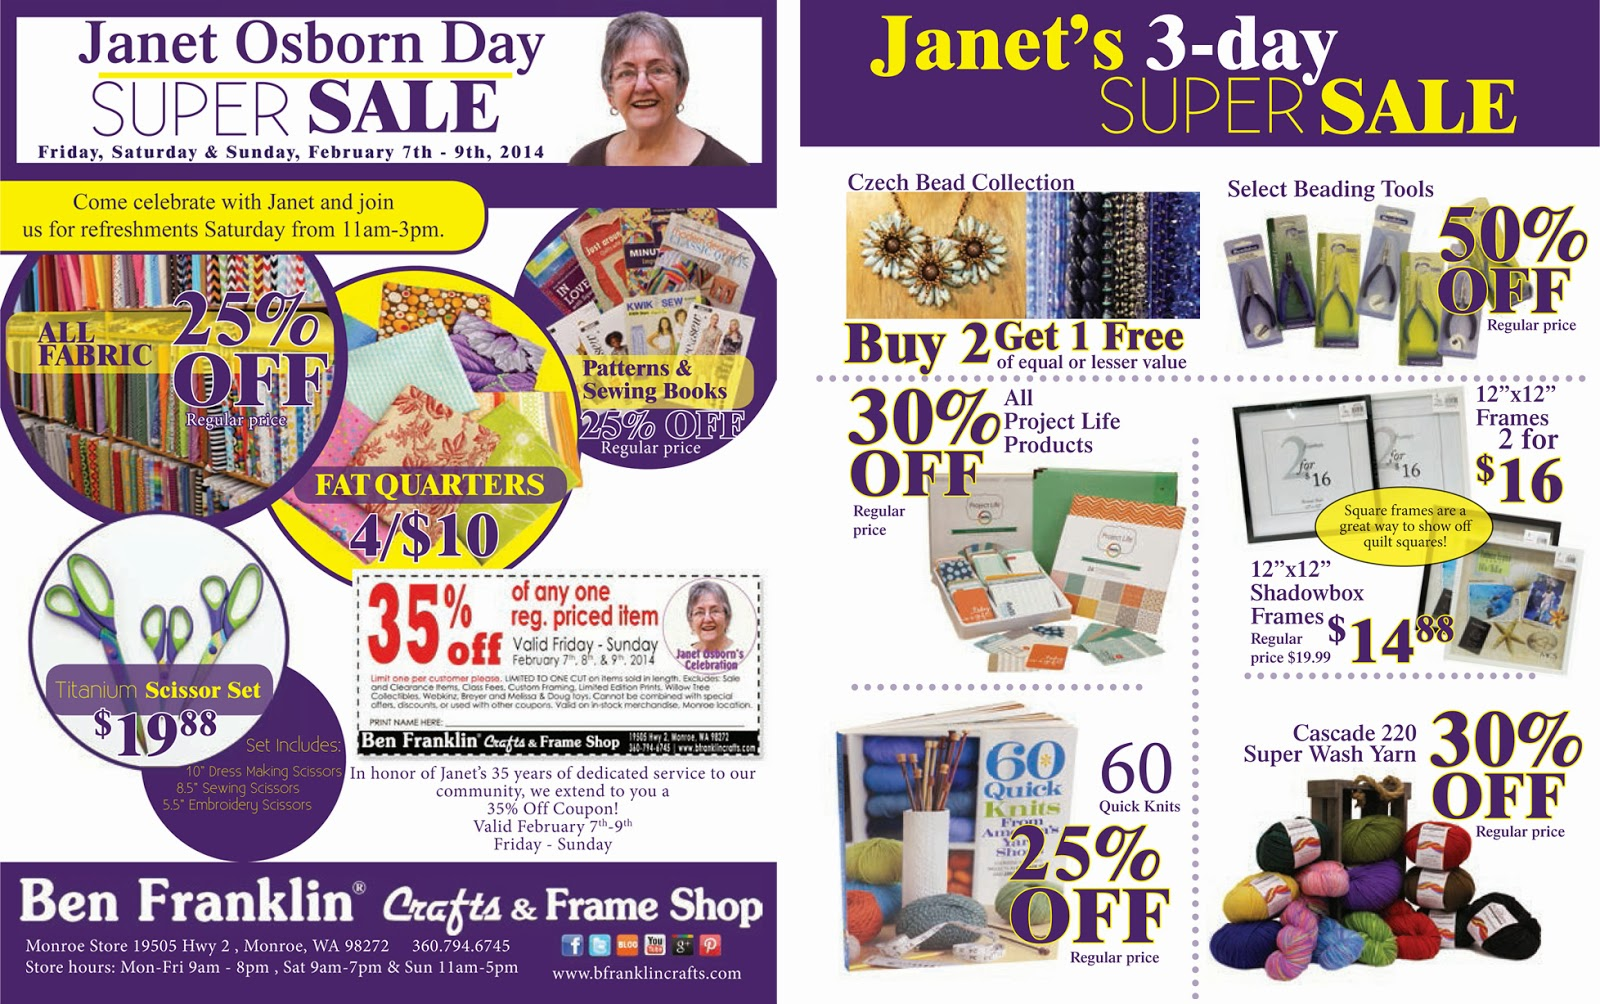 Ben franklin crafts and frame shop monroe wa february 2014 for Ben franklin craft store coupons